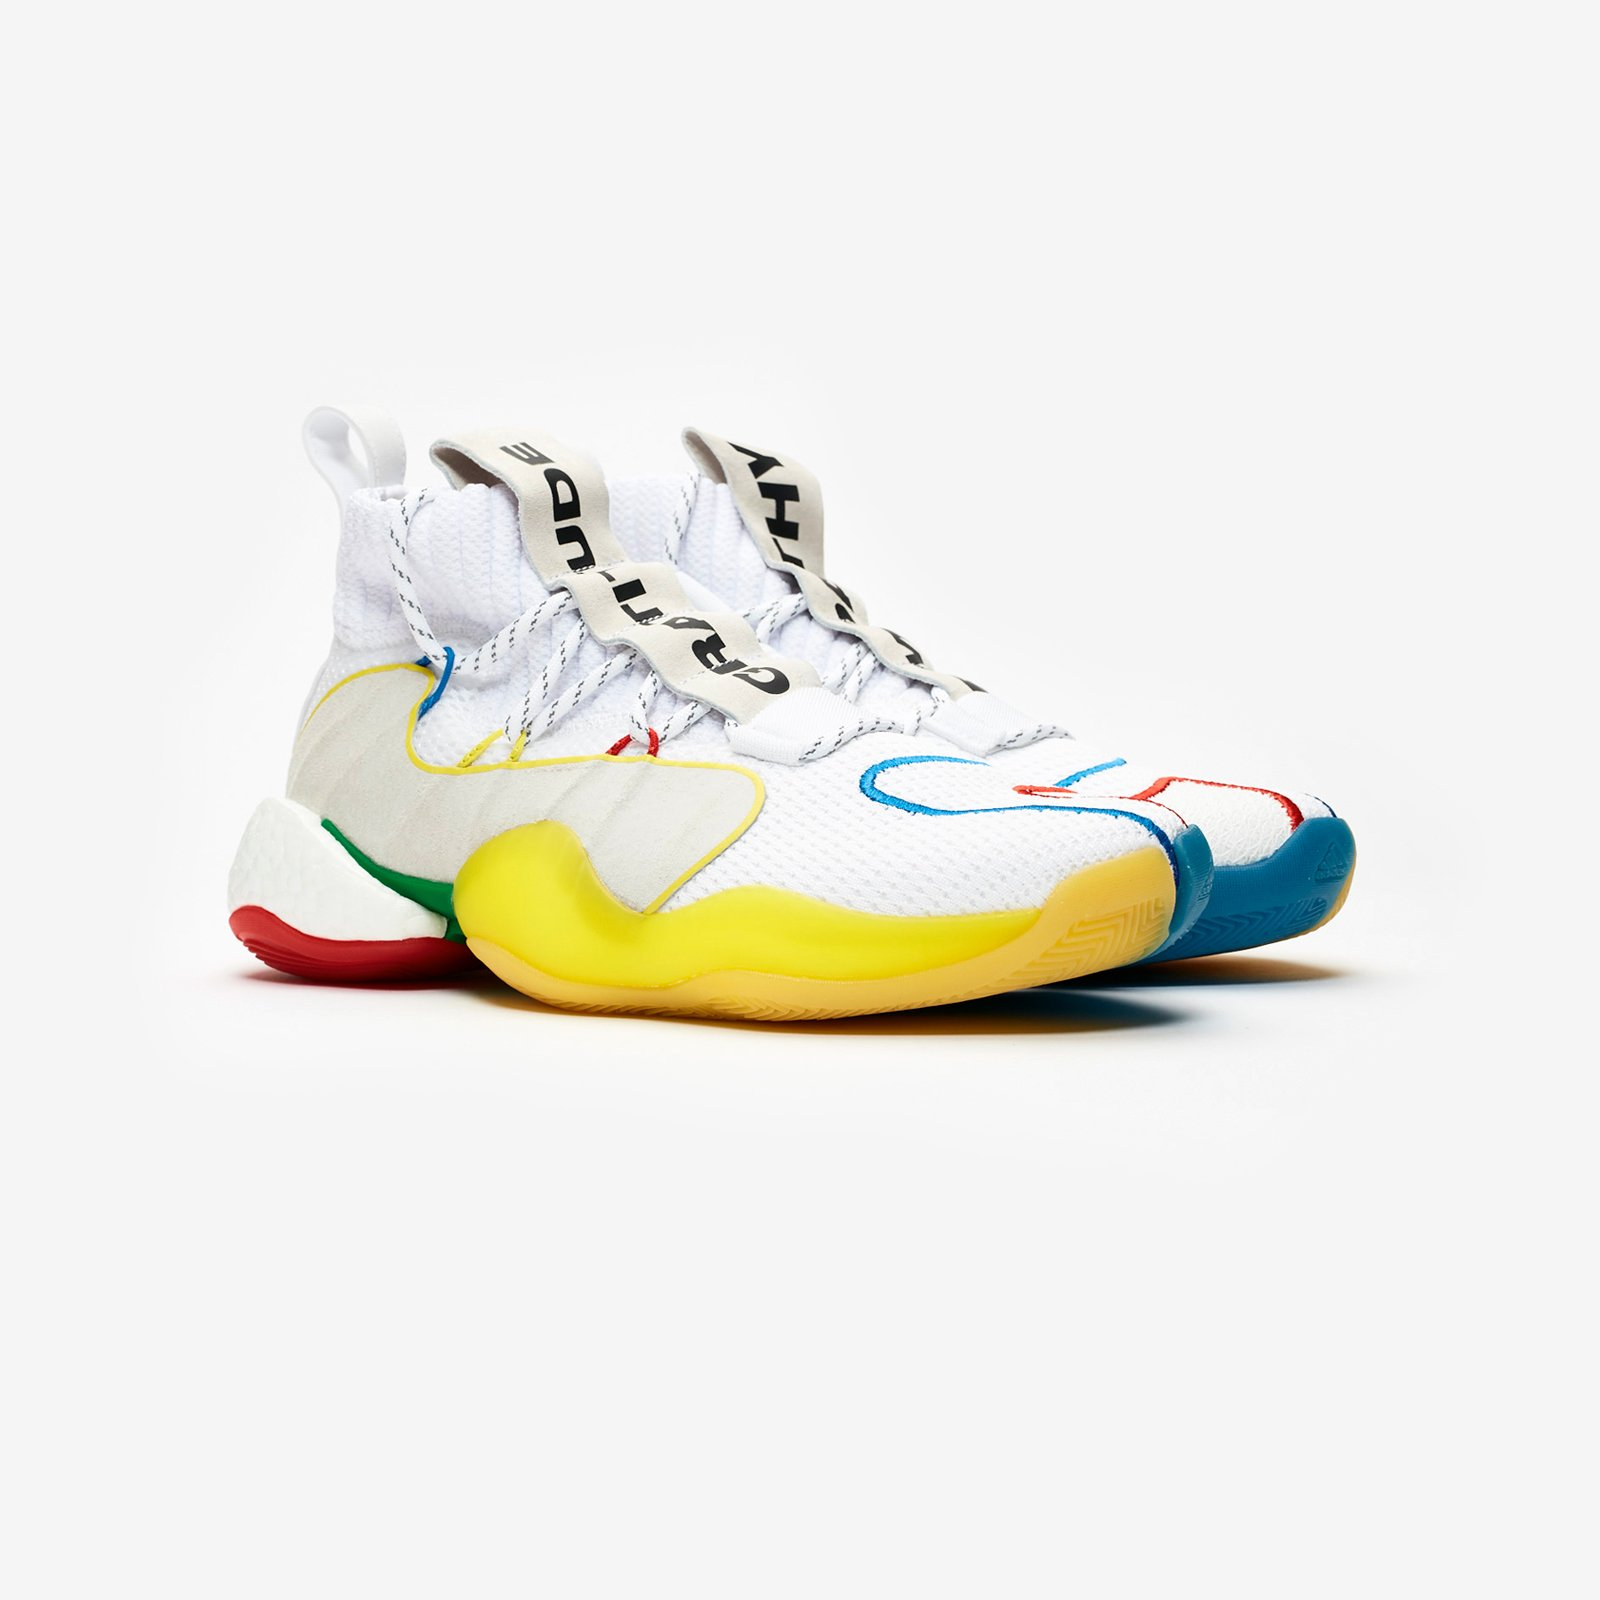 best service 77256 681a7 adidas Crazy BYW LVL X PW - Ef3500 - Sneakersnstuff ...